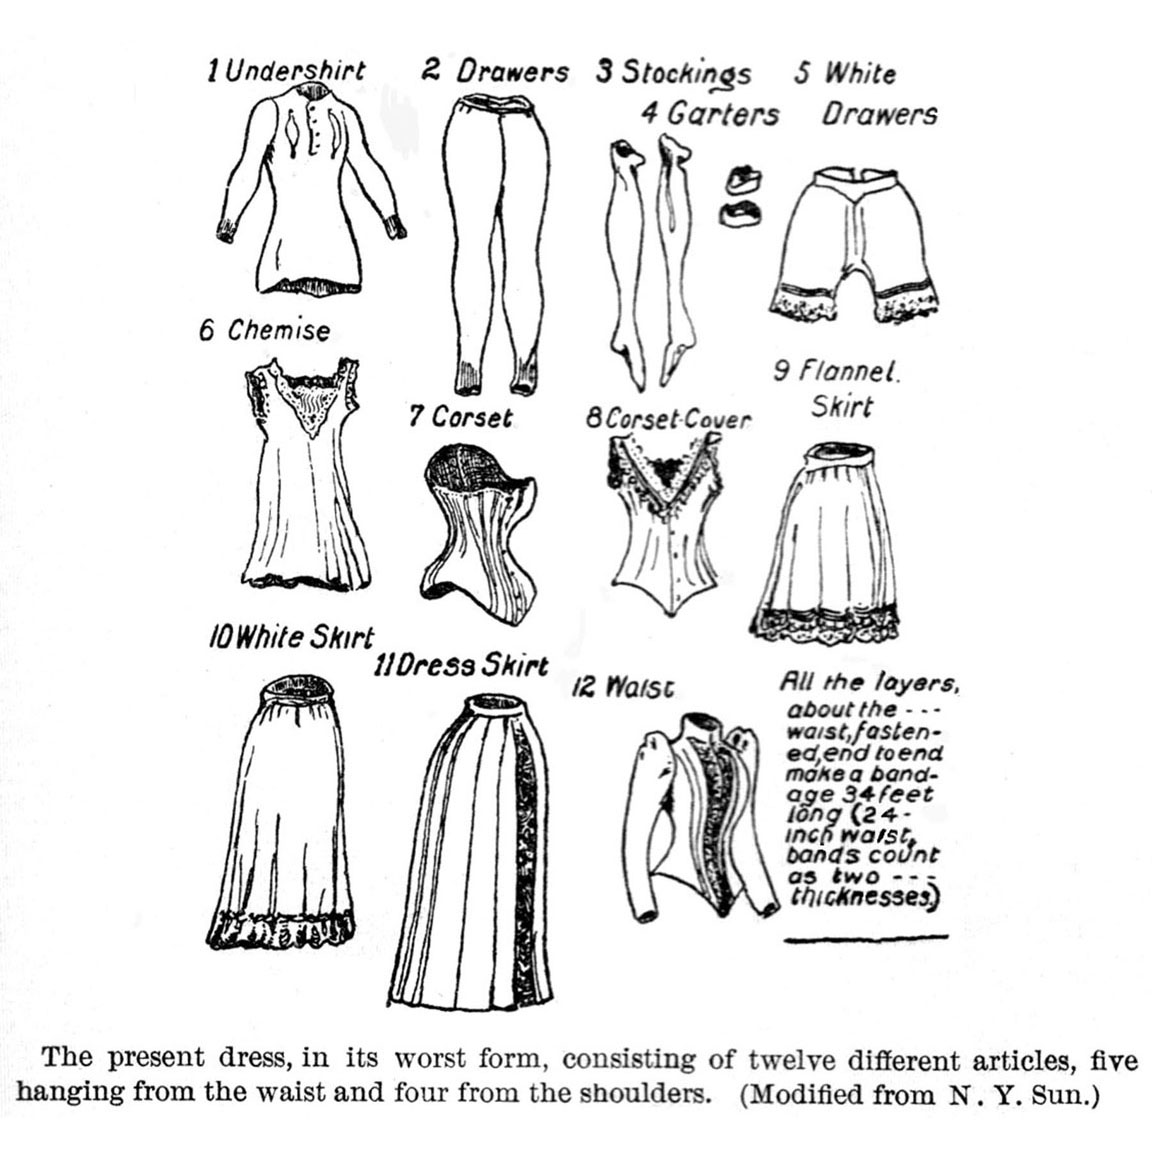 1893-dress: shows 12 layers of female clothing